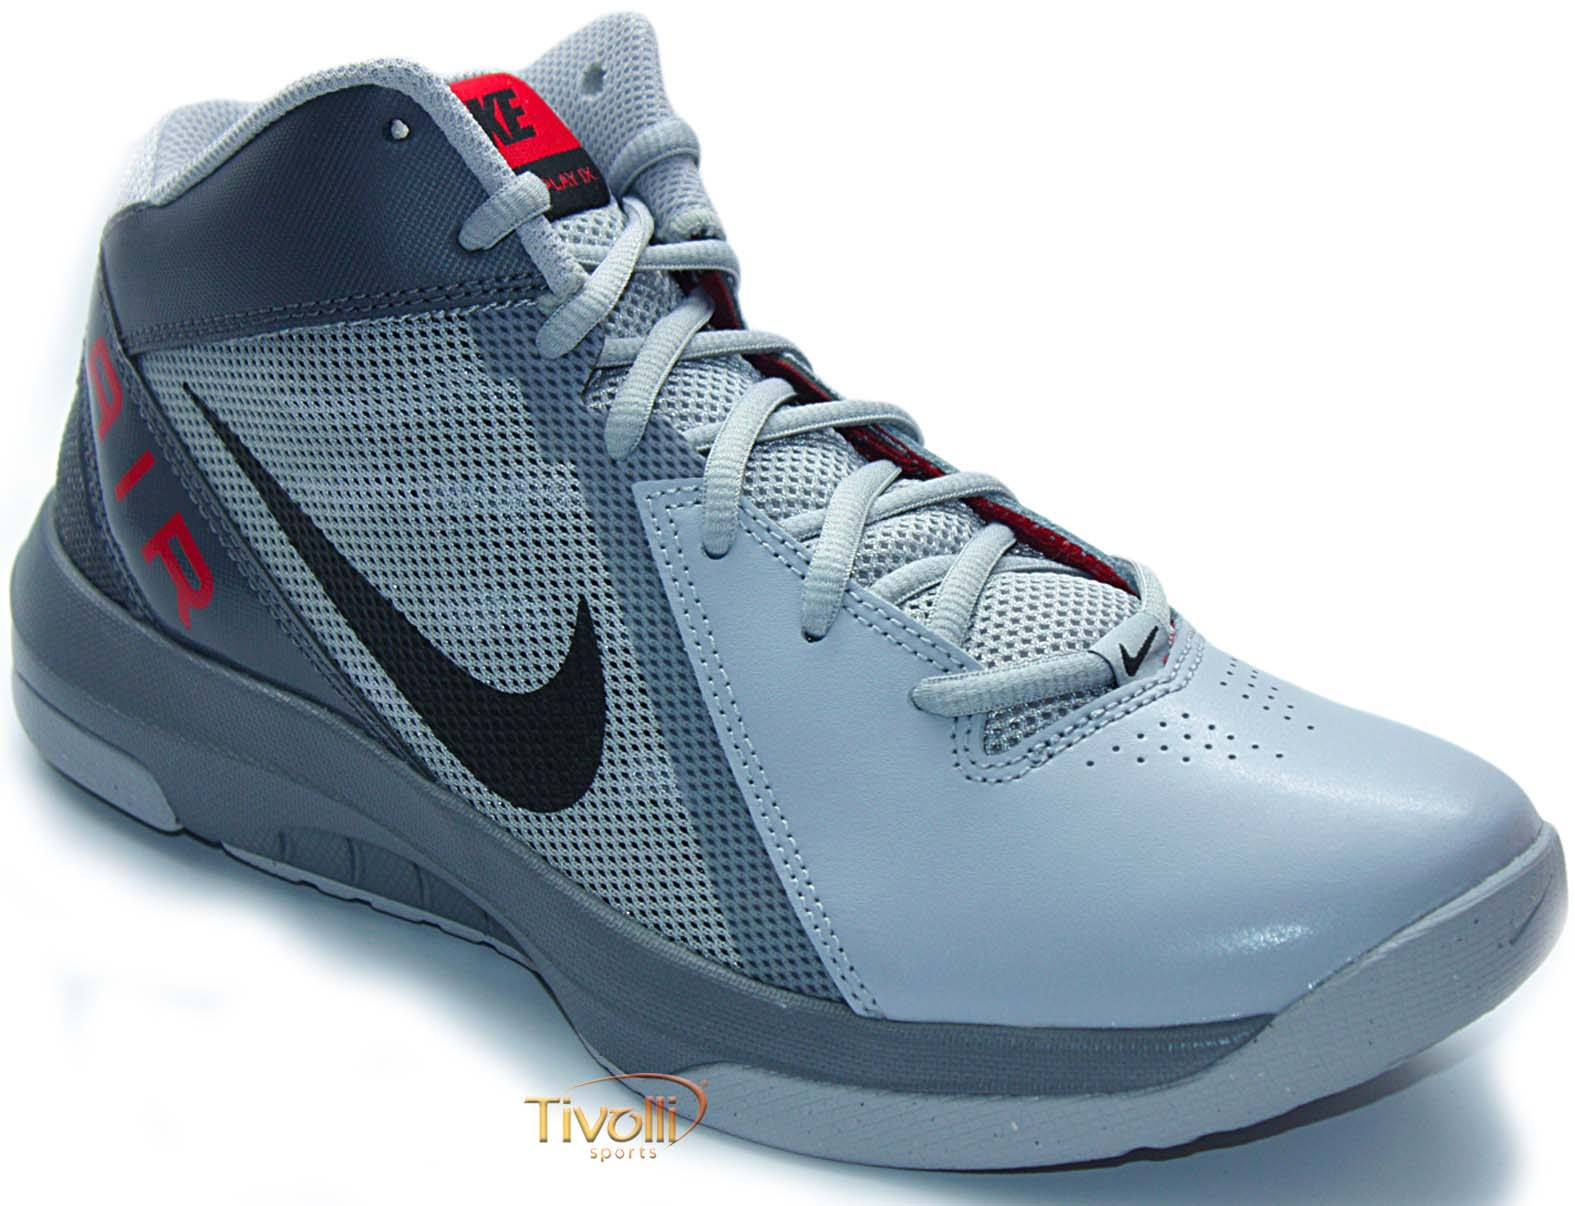 dce977e36 Tênis Nike The Air Overplay IX Basquete > Masculino Cinza >